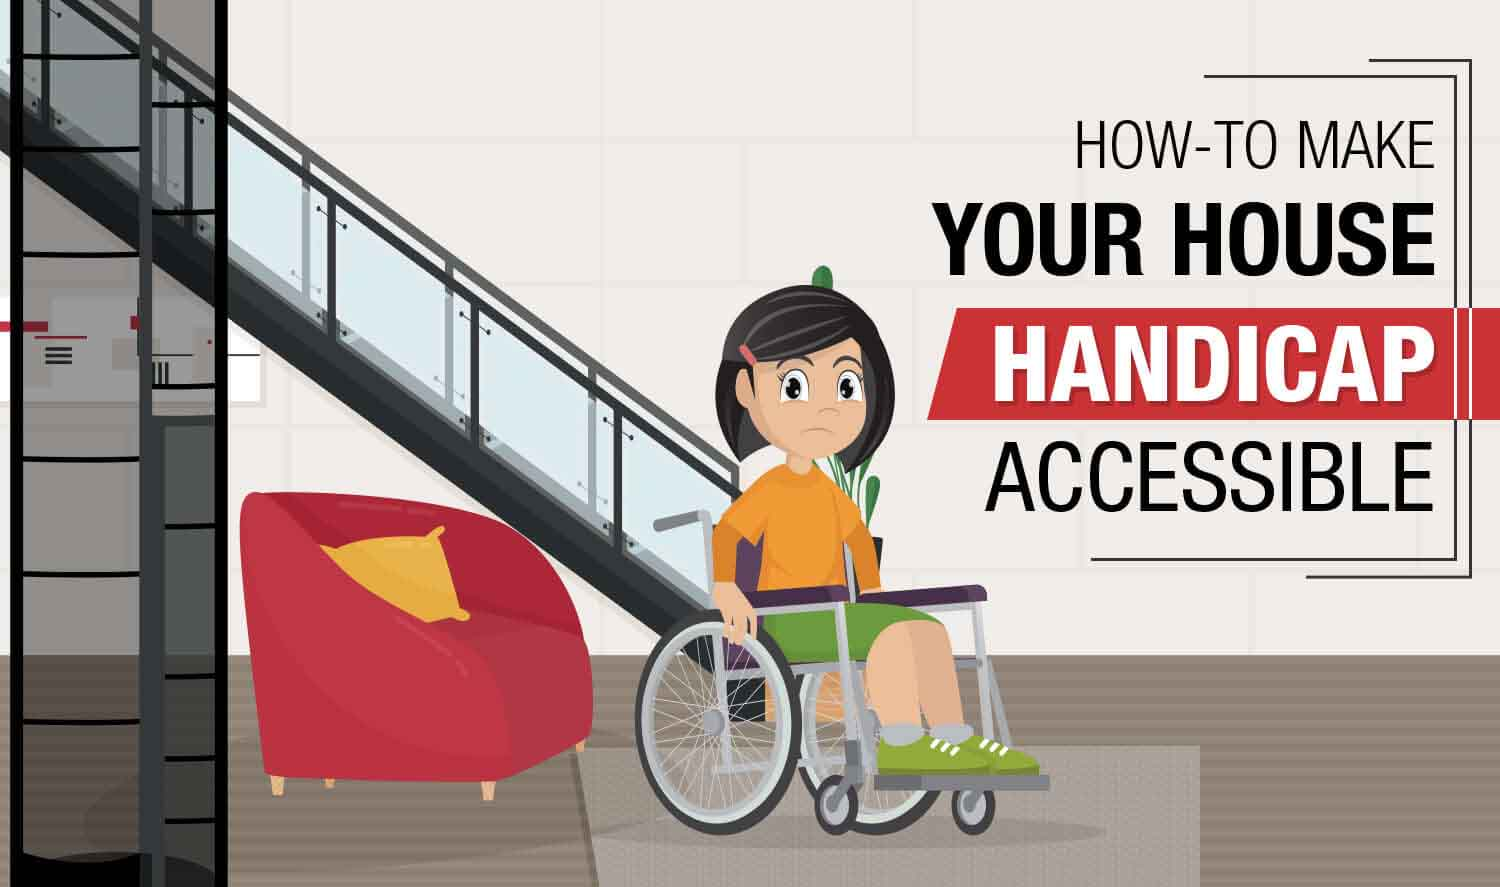 How to Make Your House Handicap Accessible